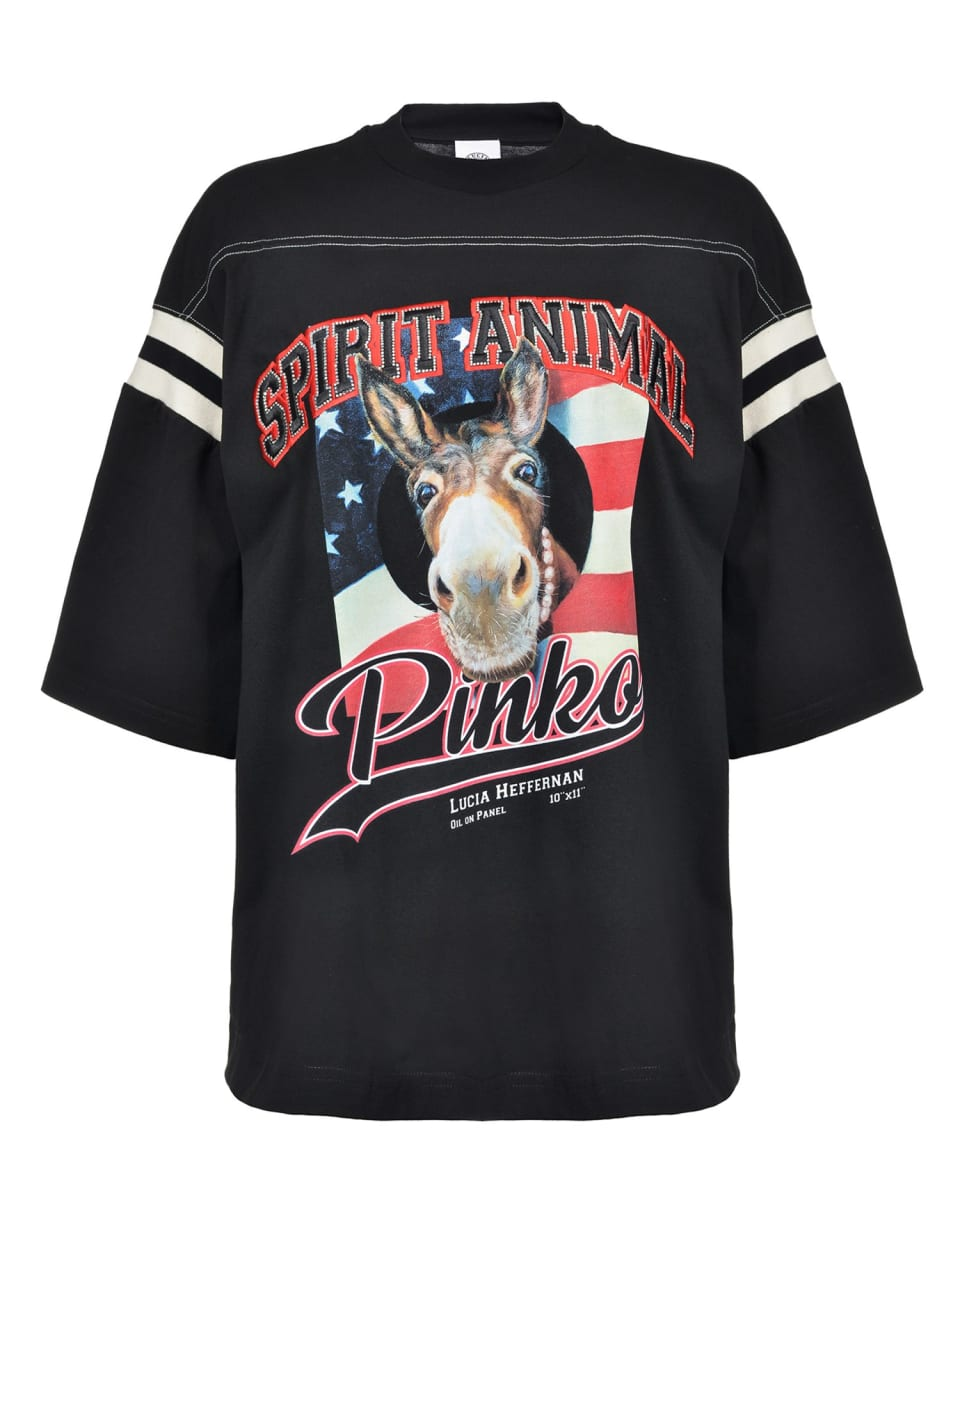 "T-shirt ""Spirit Animal"" - Pinko"